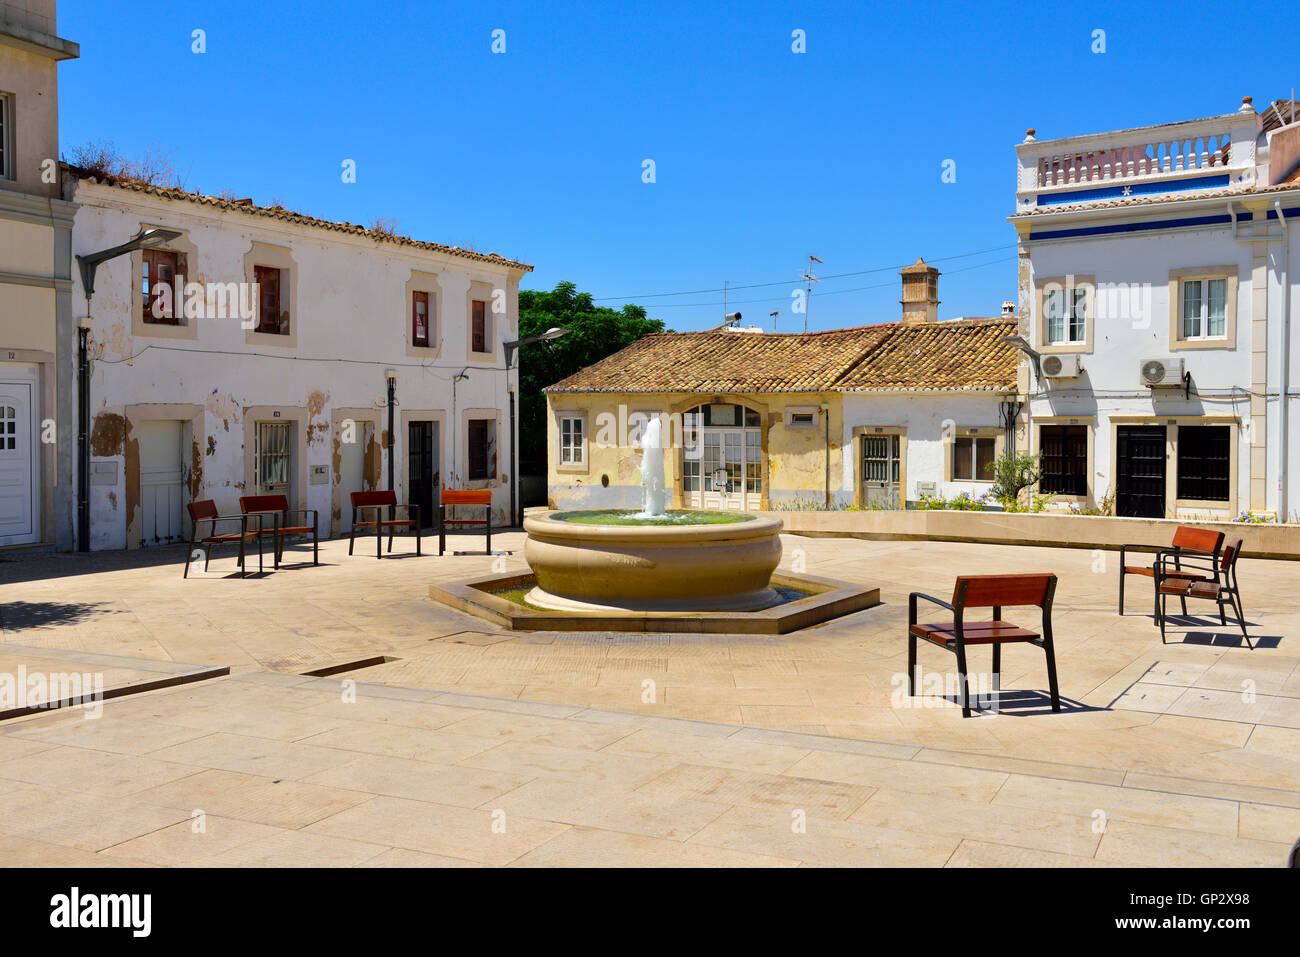 Square with seating on a quiet Sunday near the castle in the inland Algarve town of Loulé, south Portugal. - Stock Image